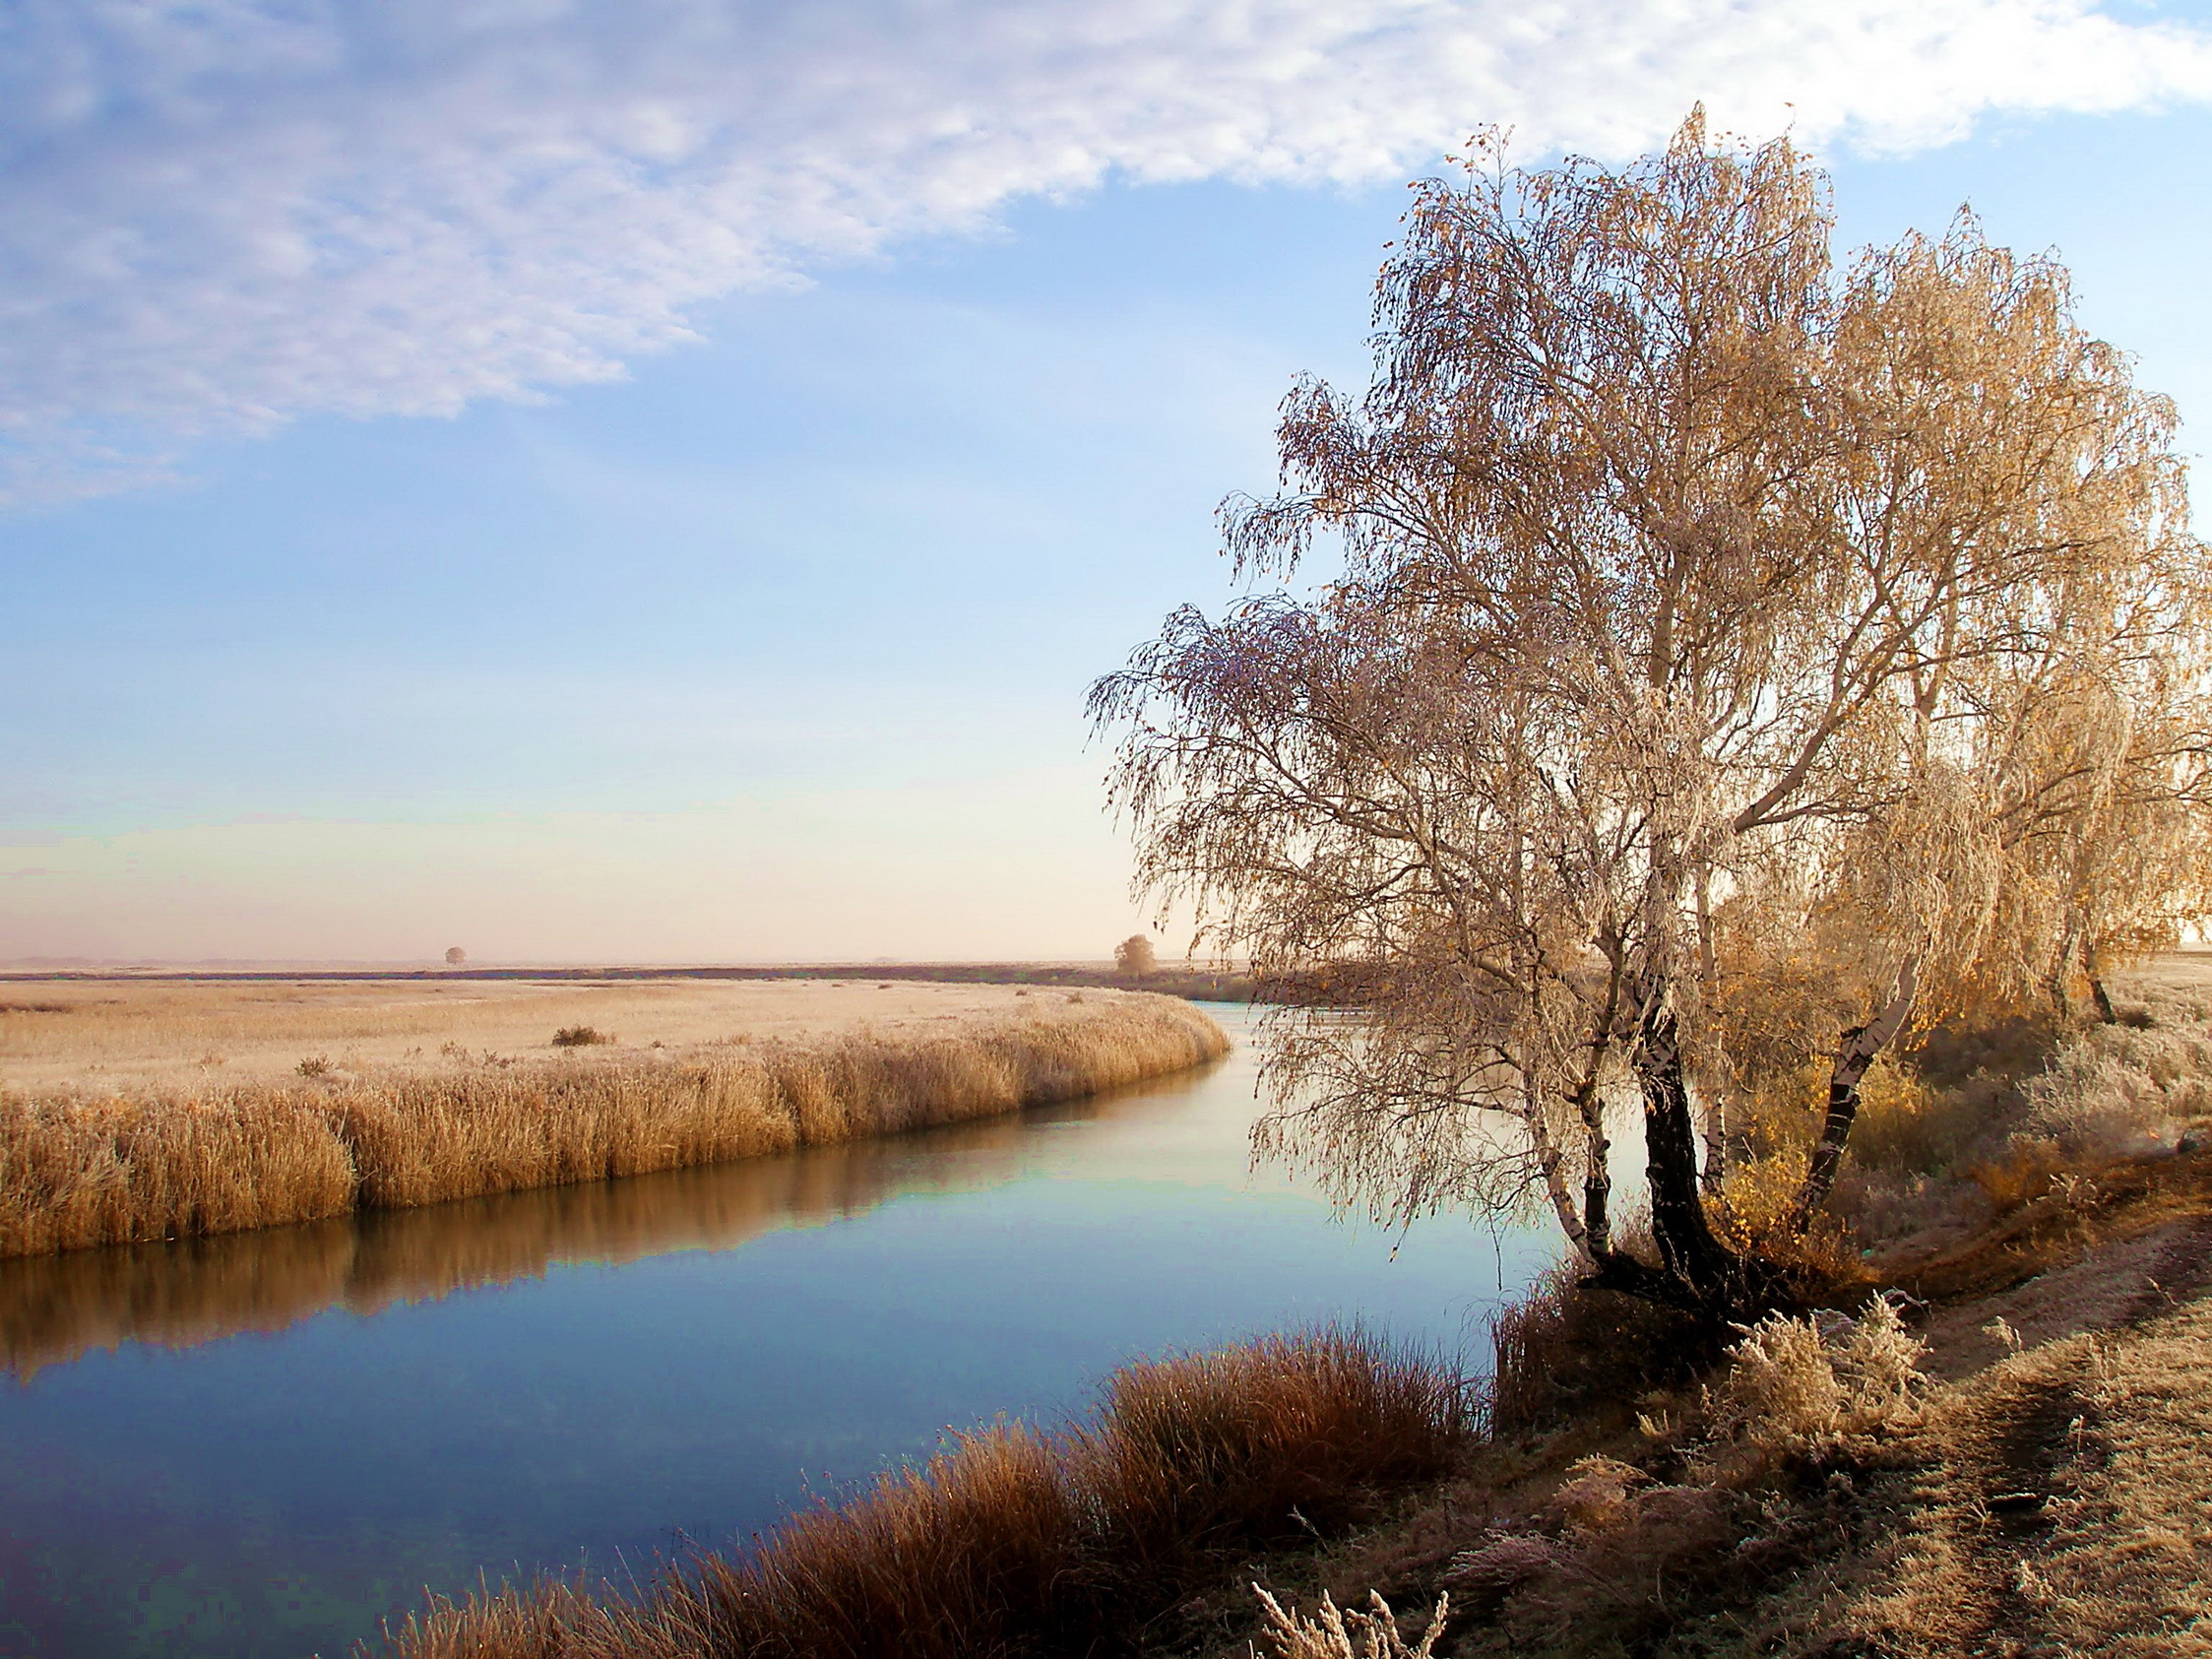 10942 download wallpaper Landscape, Rivers, Trees screensavers and pictures for free